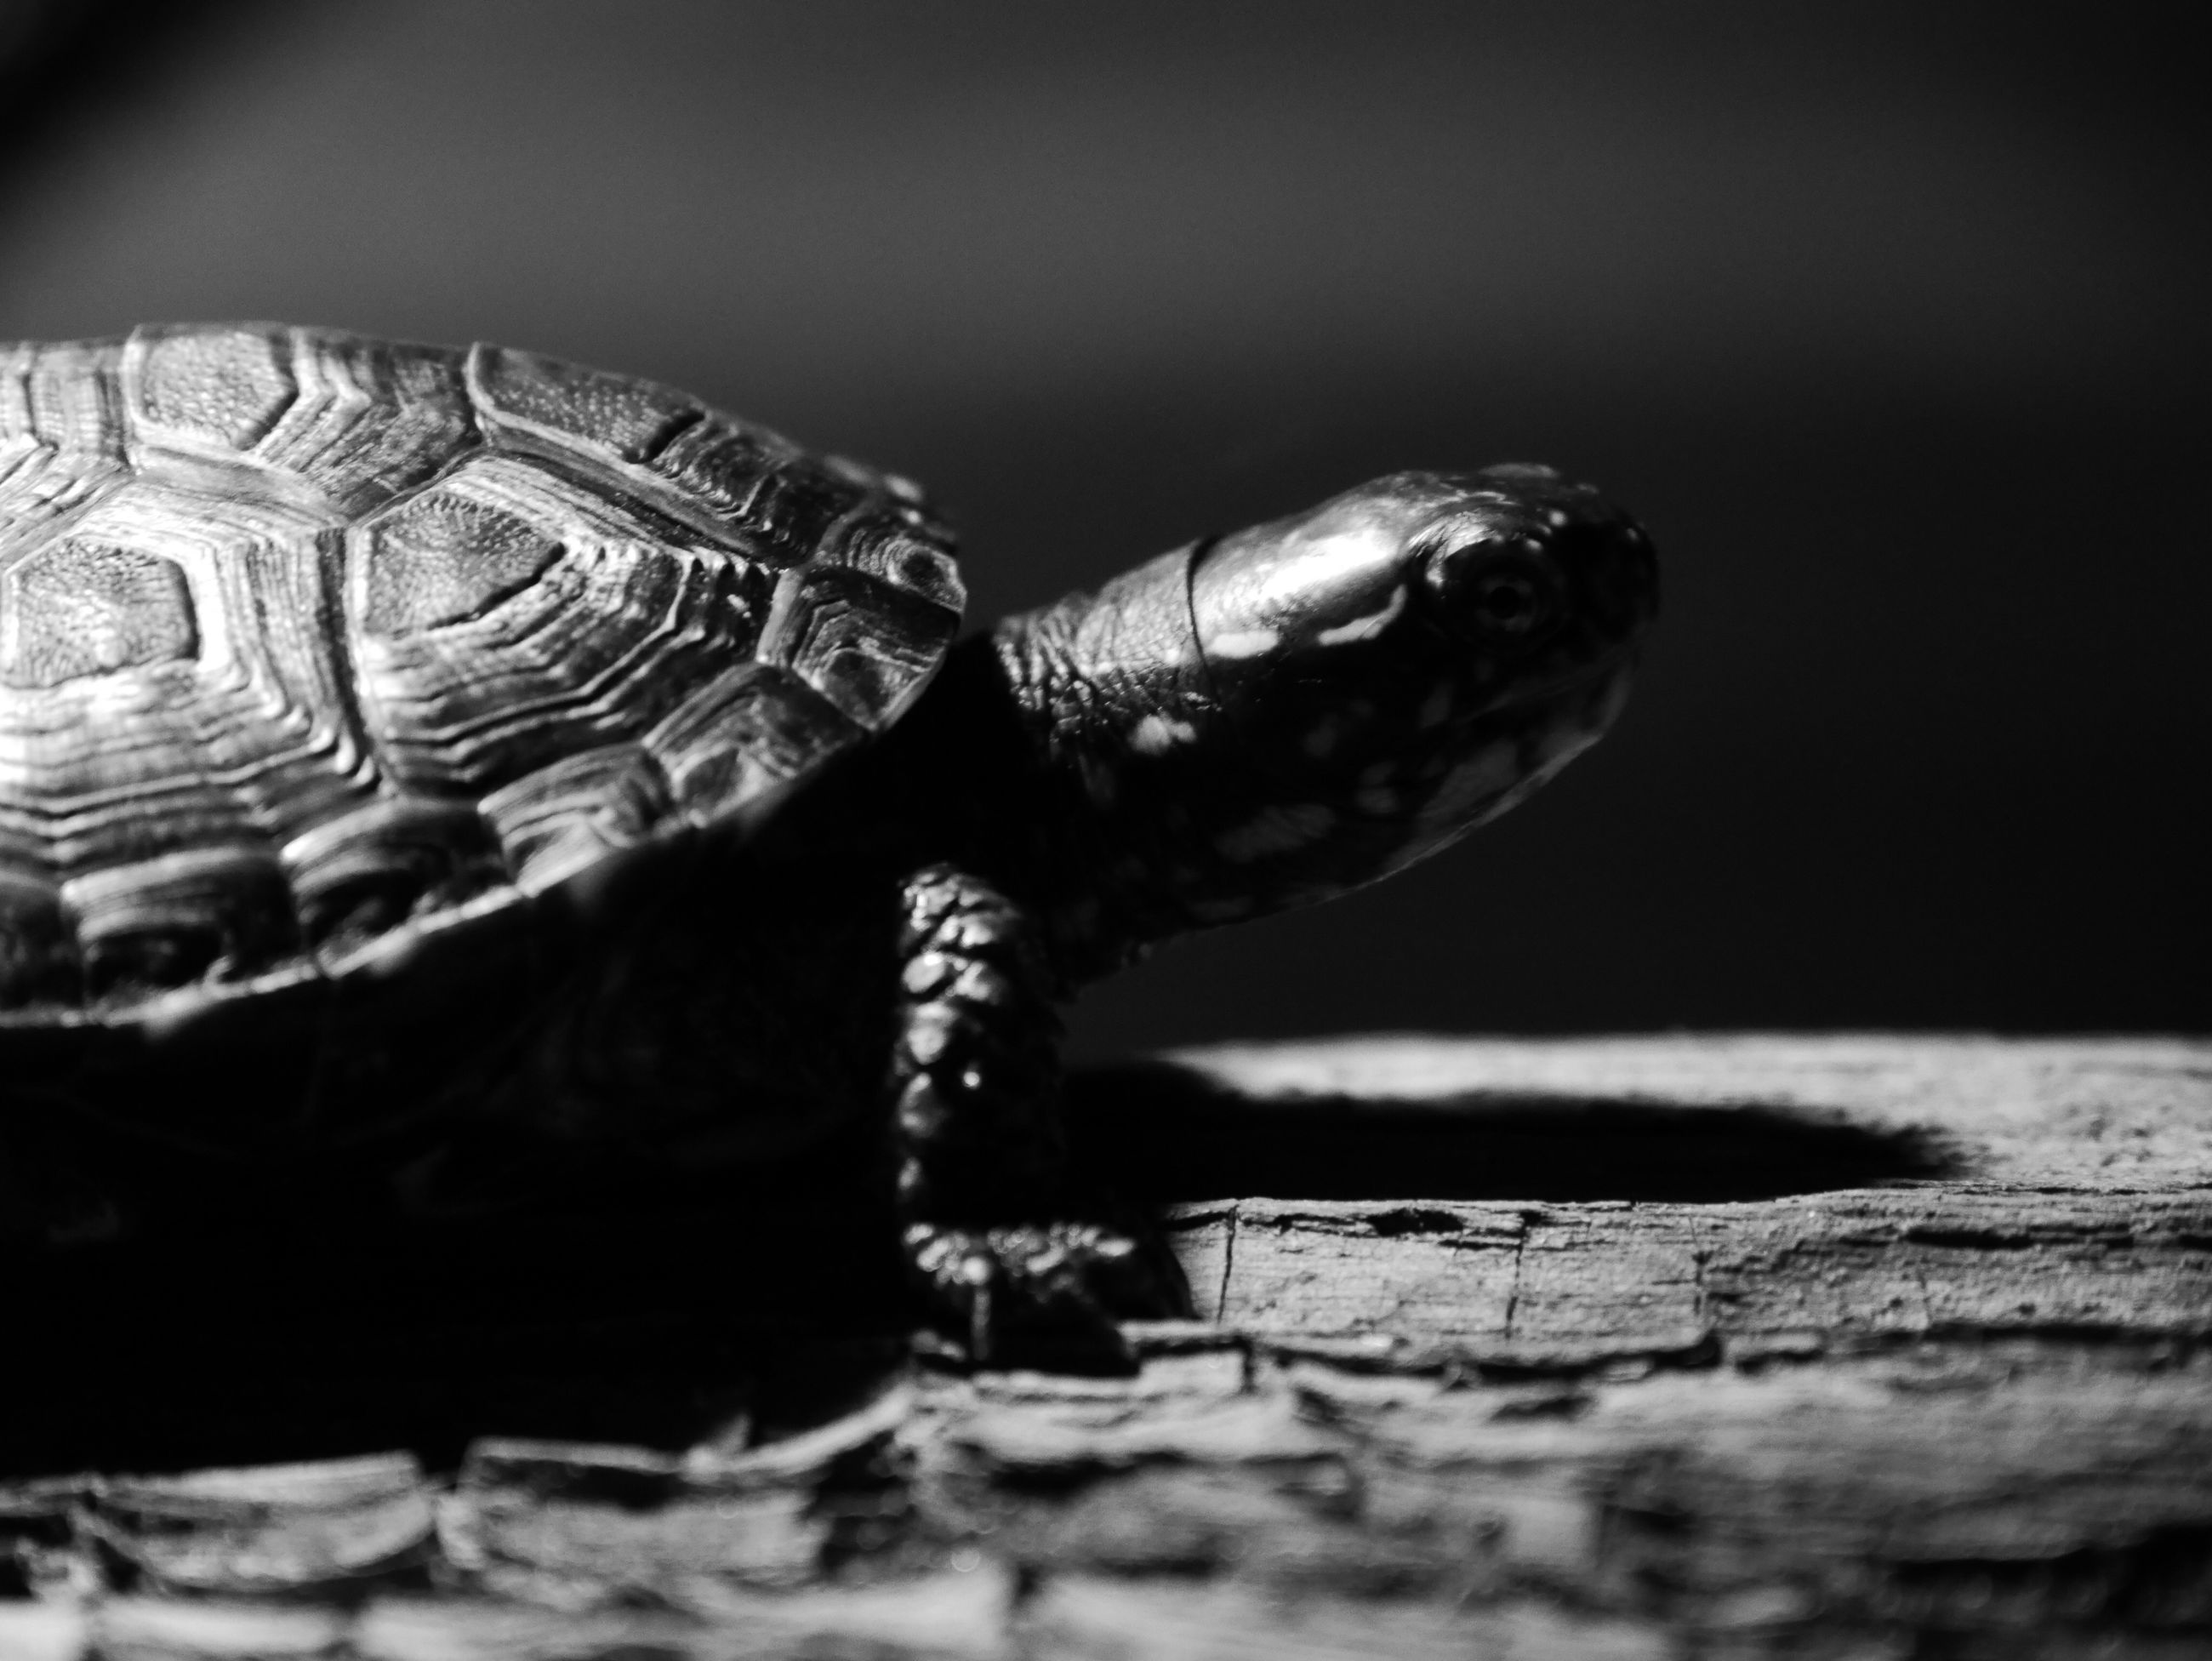 close-up, one animal, animal themes, wildlife, animals in the wild, focus on foreground, animal shell, selective focus, turtle, art and craft, indoors, reptile, natural pattern, no people, single object, pattern, creativity, animal representation, art, day